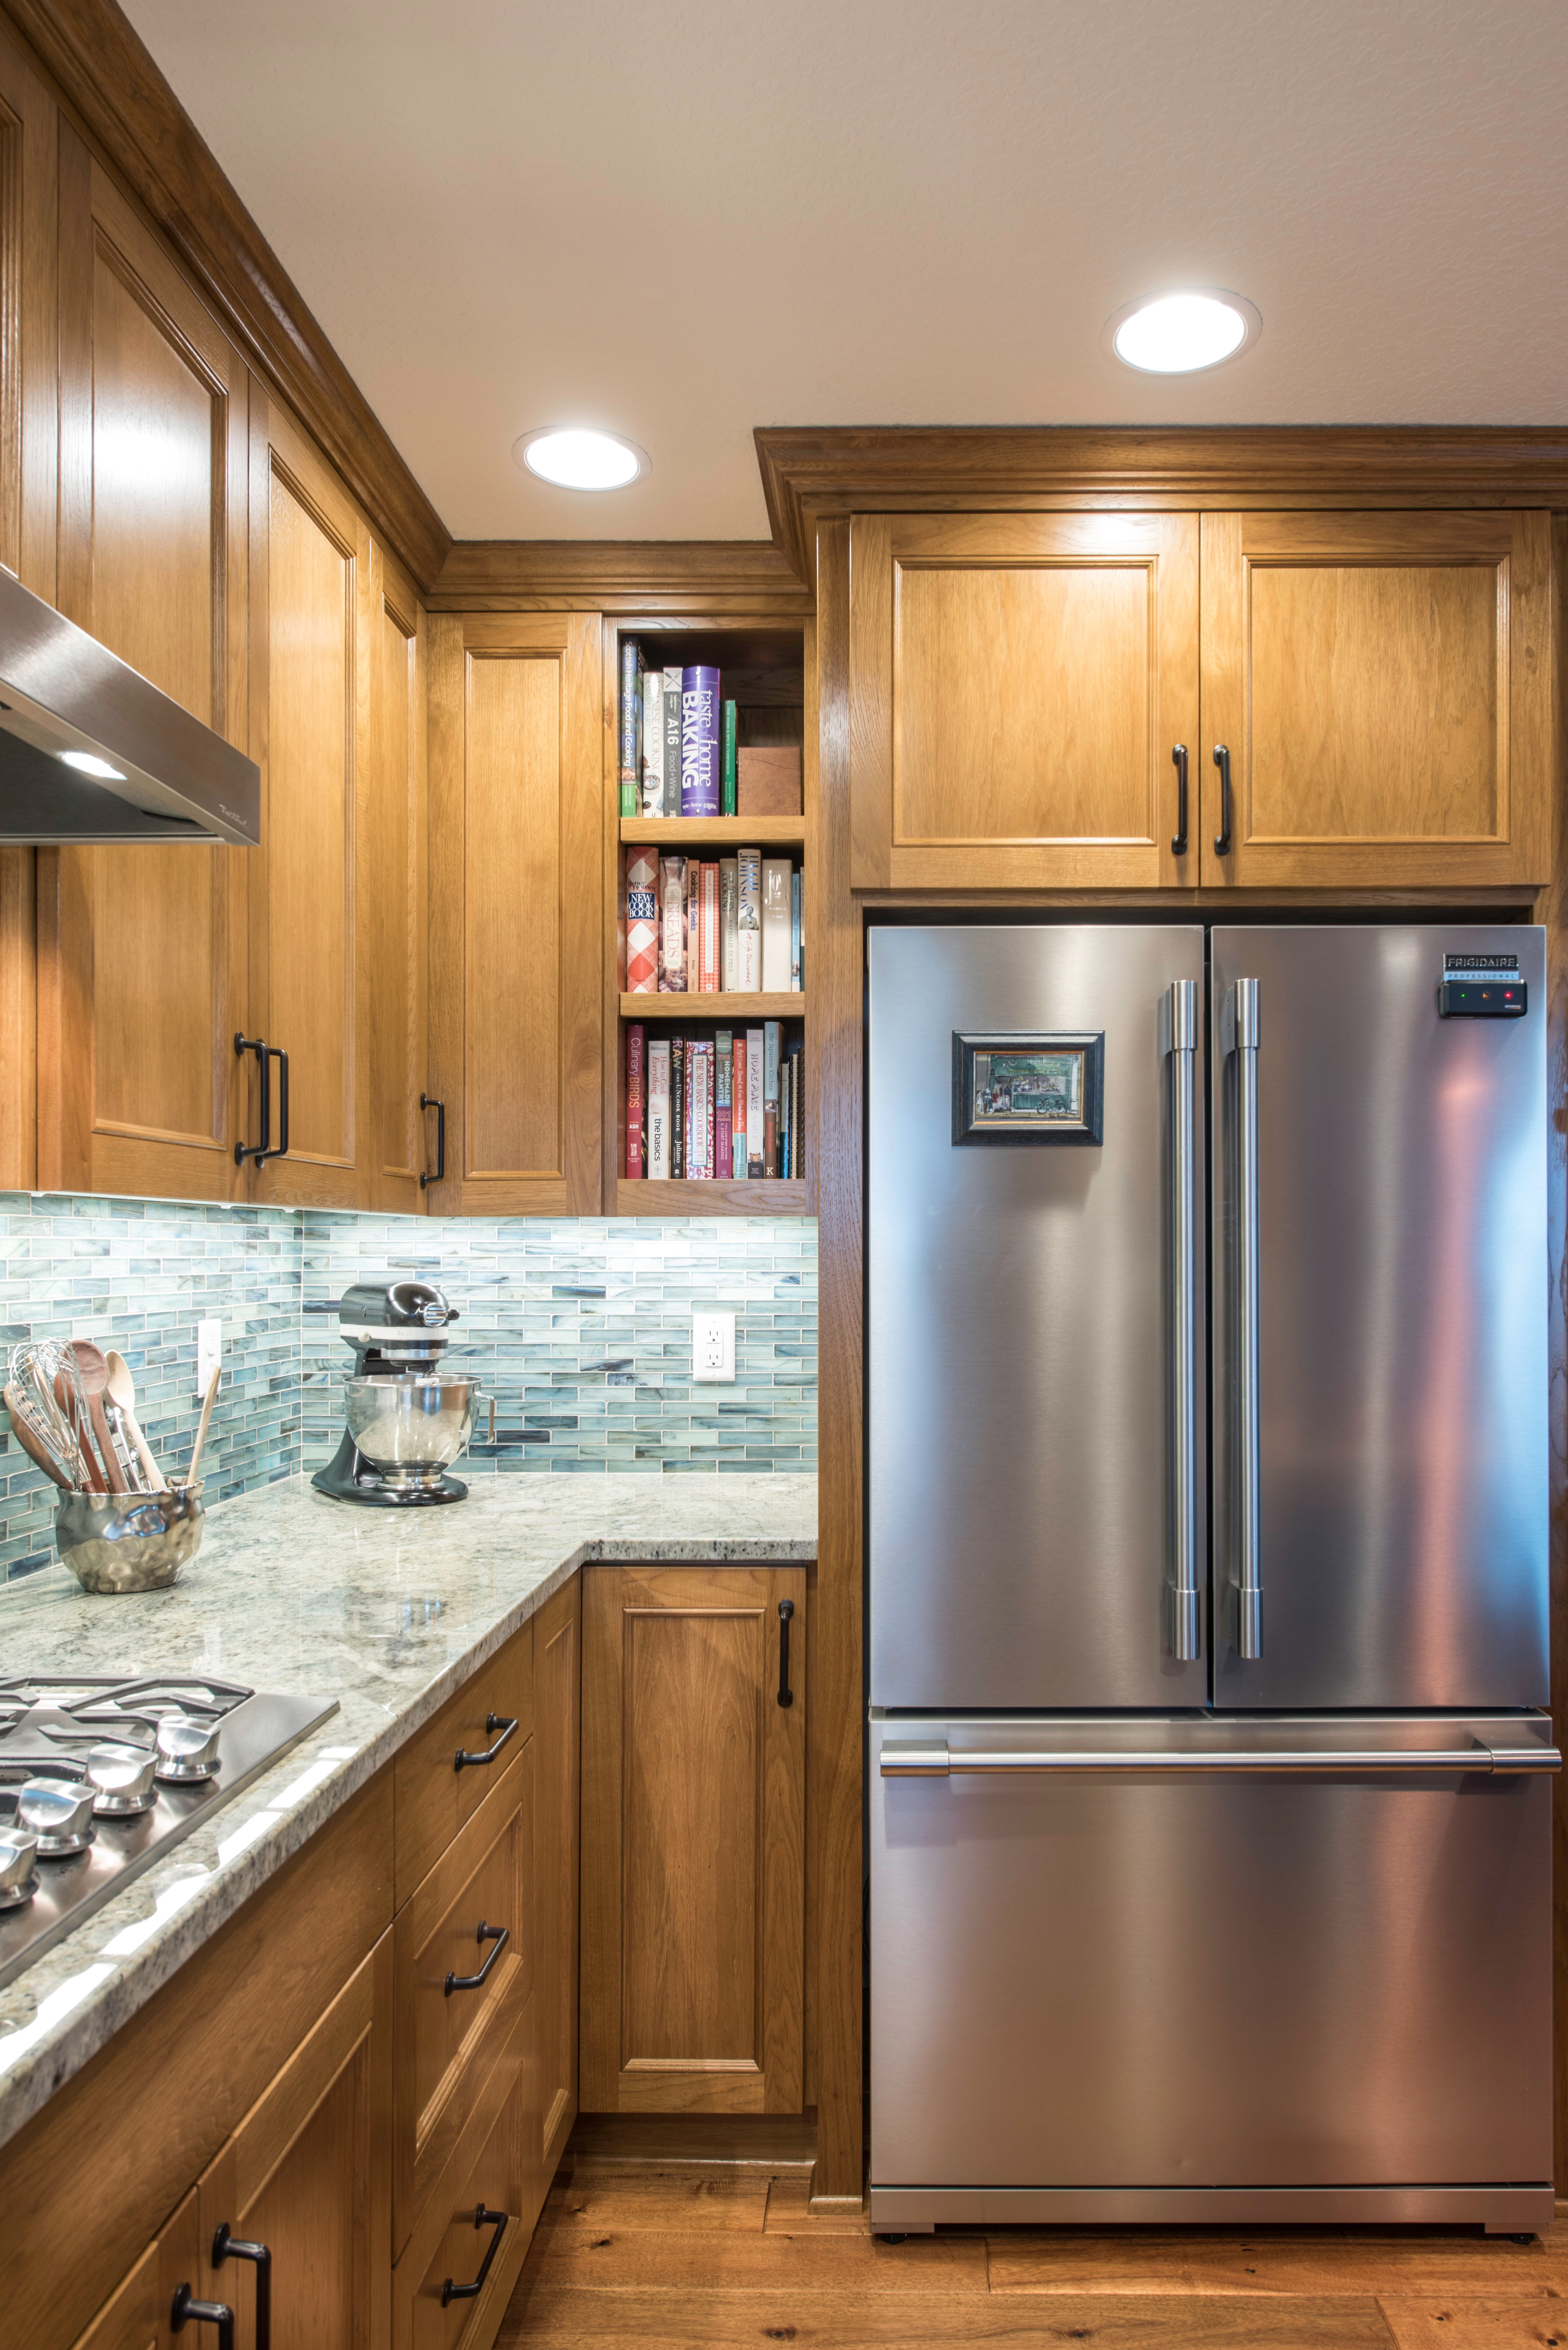 This modern and contemporary kitchen features blonde wood and a stainless steel refrigerator.